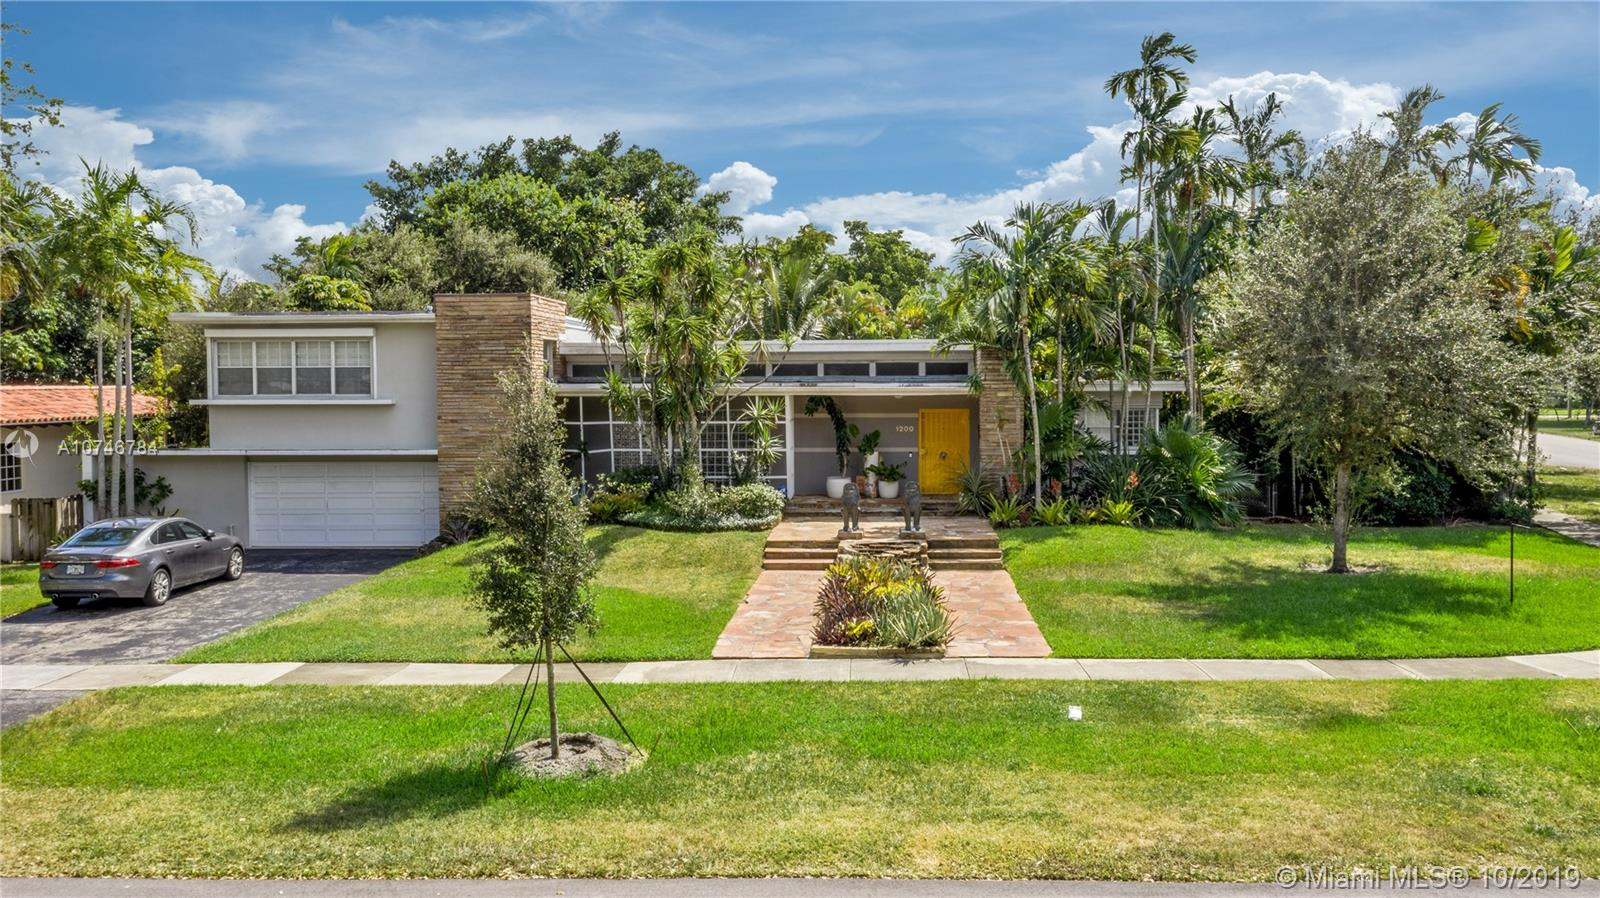 1200 NE 96th St, Miami Shores, Florida 33138, 4 Bedrooms Bedrooms, ,4 BathroomsBathrooms,Residential,For Sale,1200 NE 96th St,A10746784